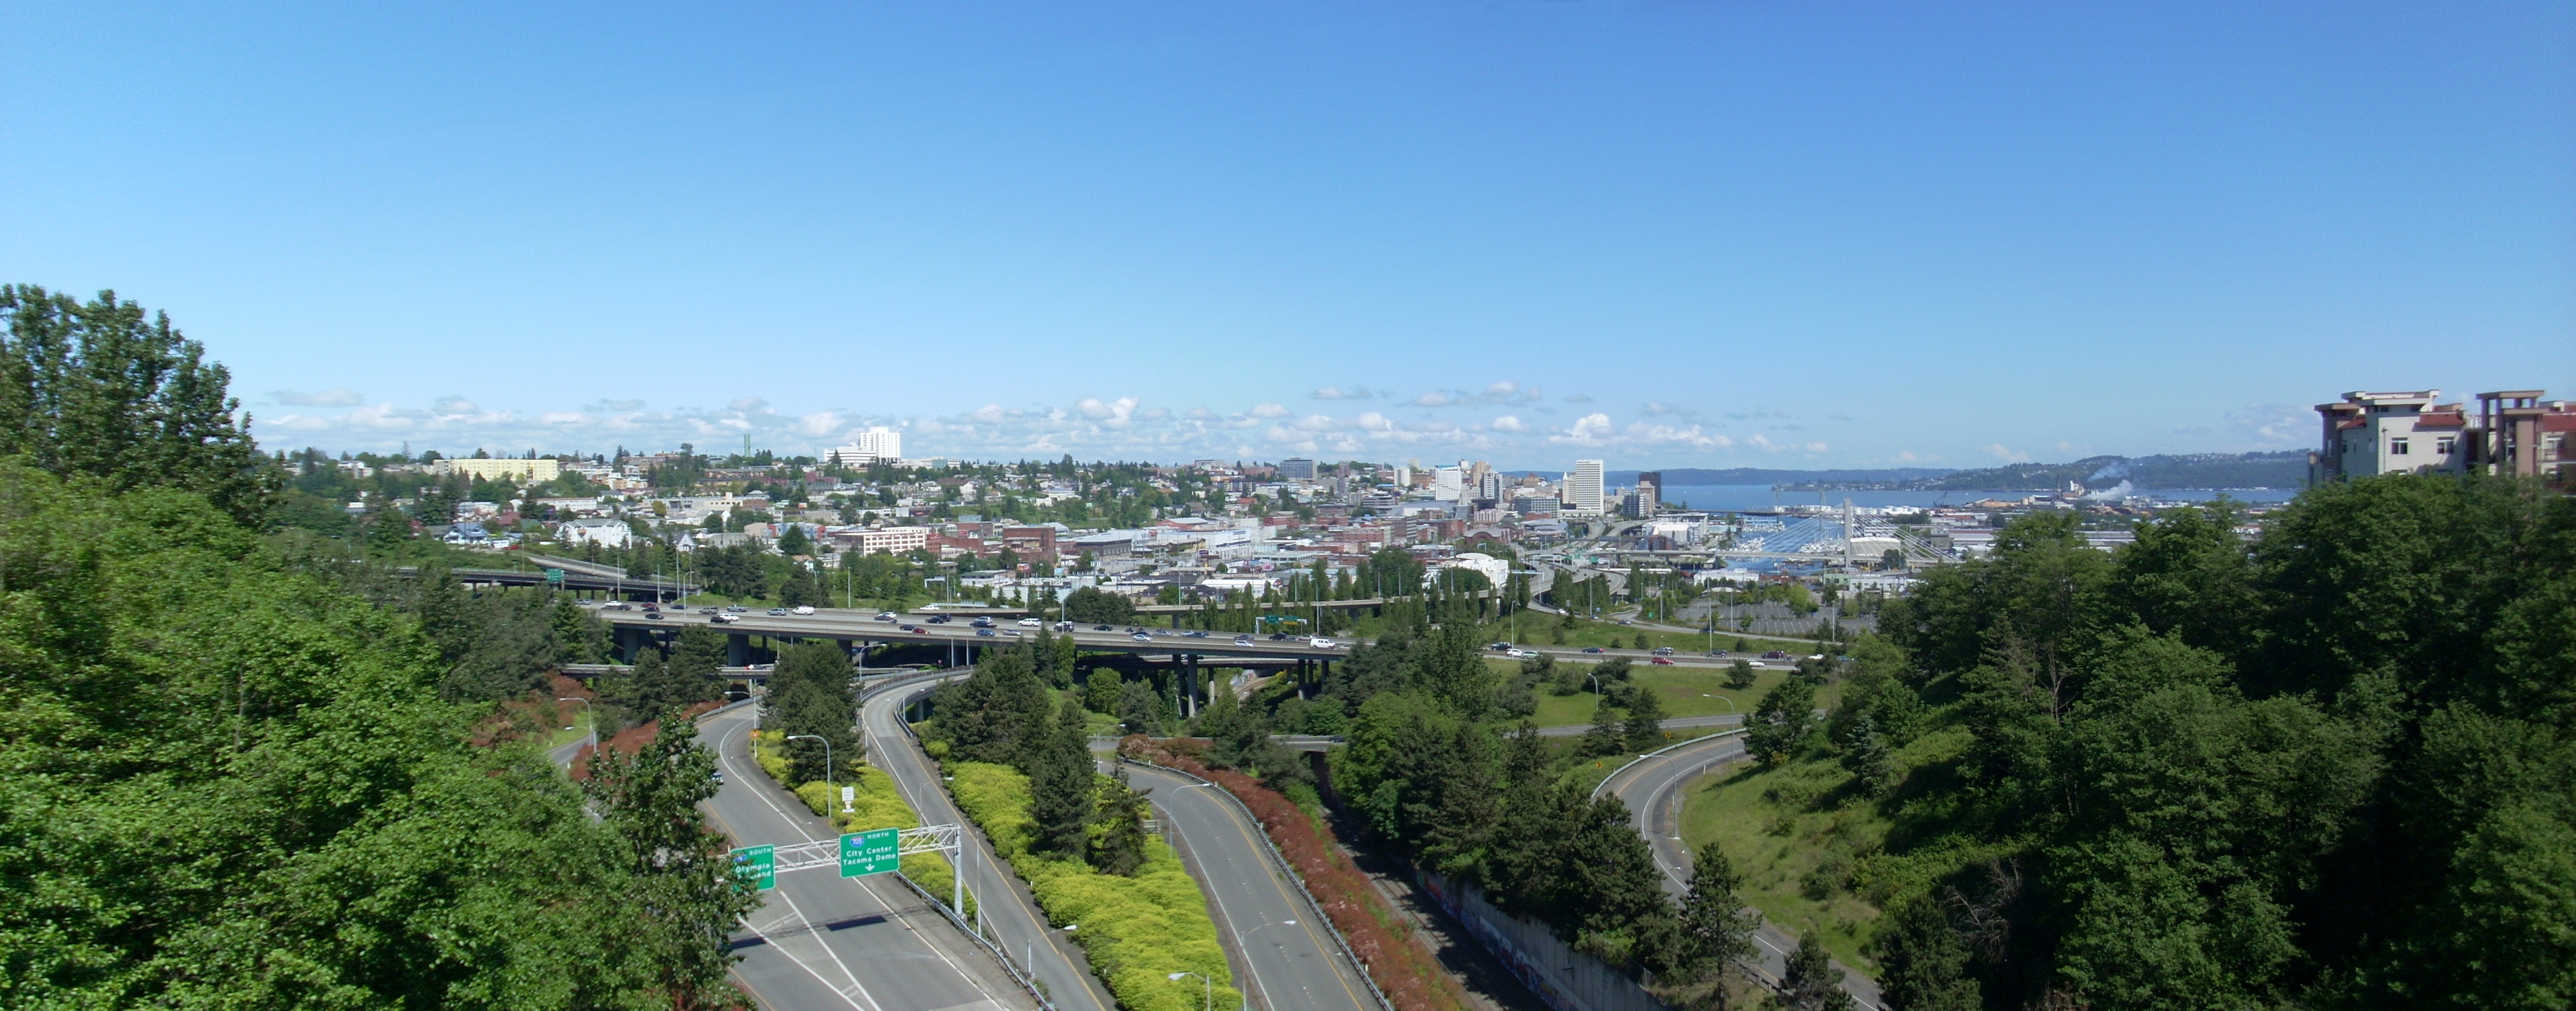 Downtown, Tacoma, Washington